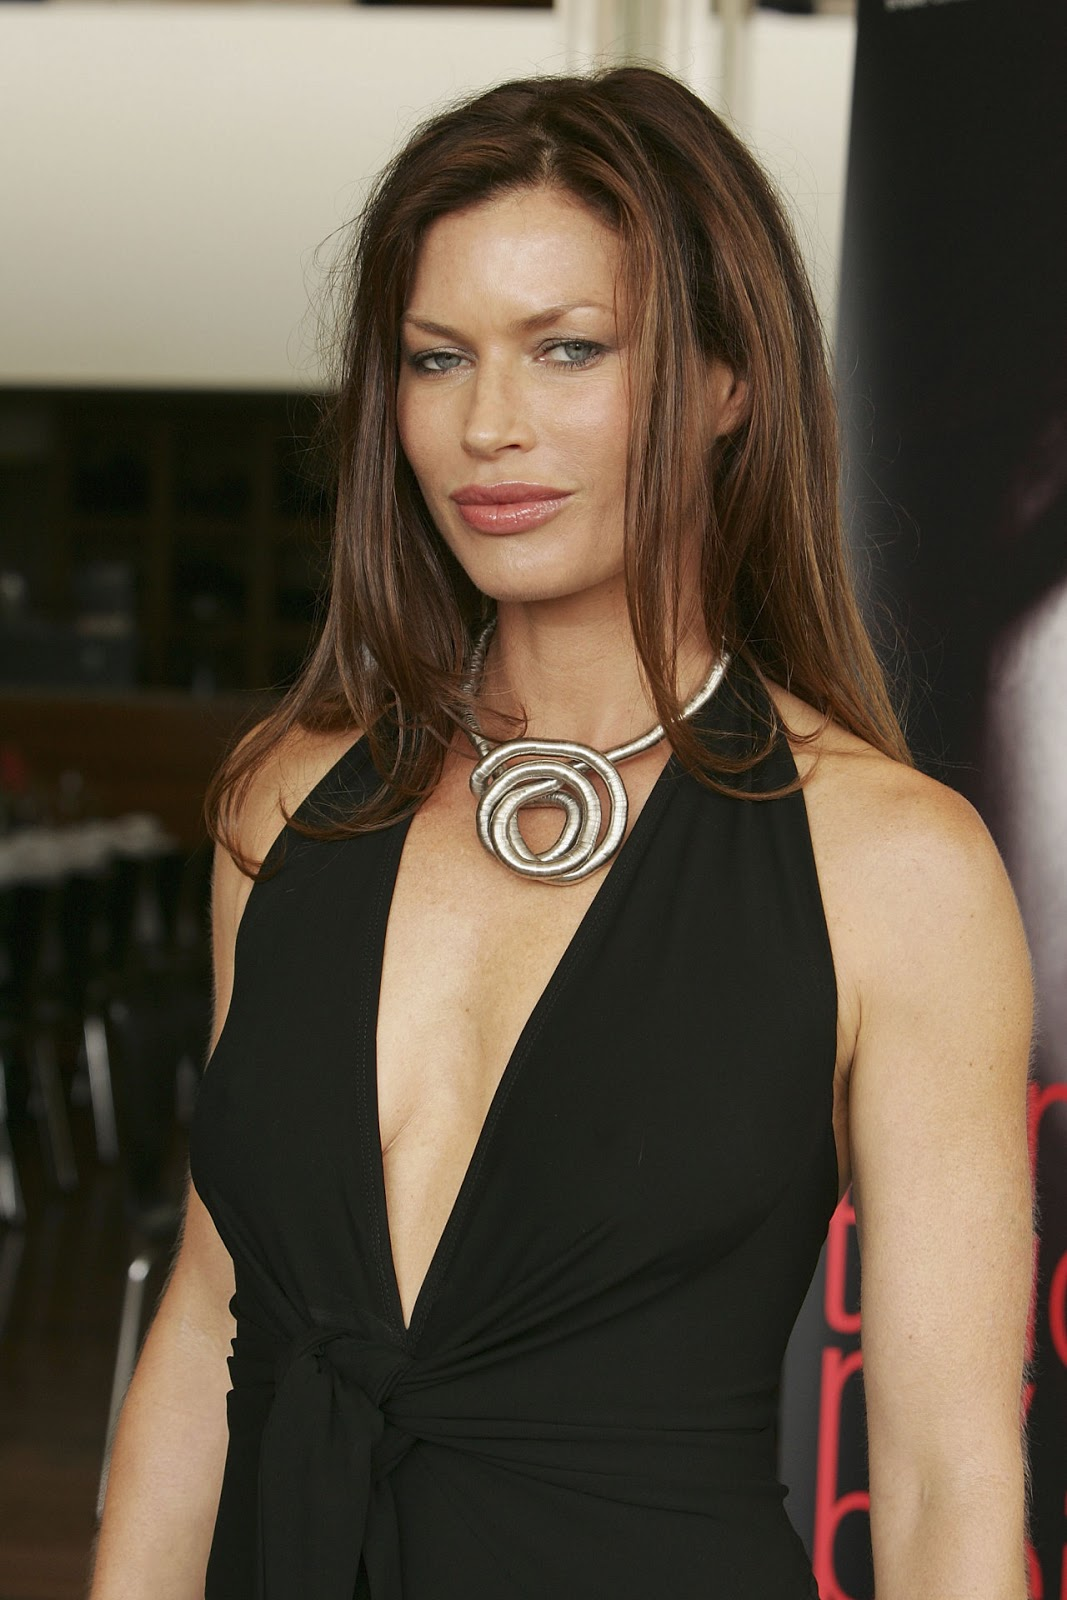 Wallpapers Wide With Quotes Chatter Busy Carre Otis Quotes